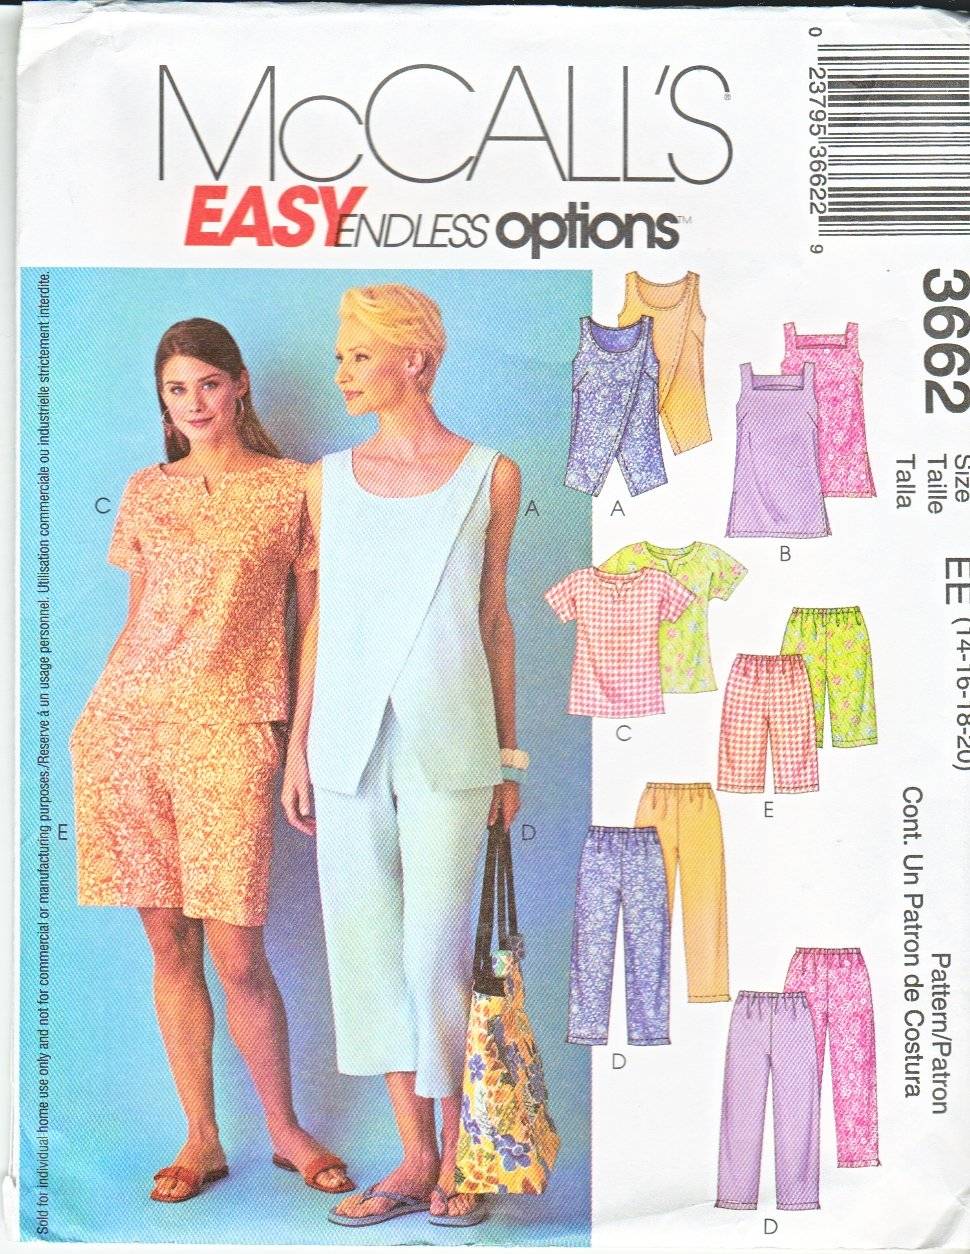 McCall's Sewing Pattern 3662 M3662 Misses Size 6-12 Easy Summer Pullover Tops Shorts Cropped Pants